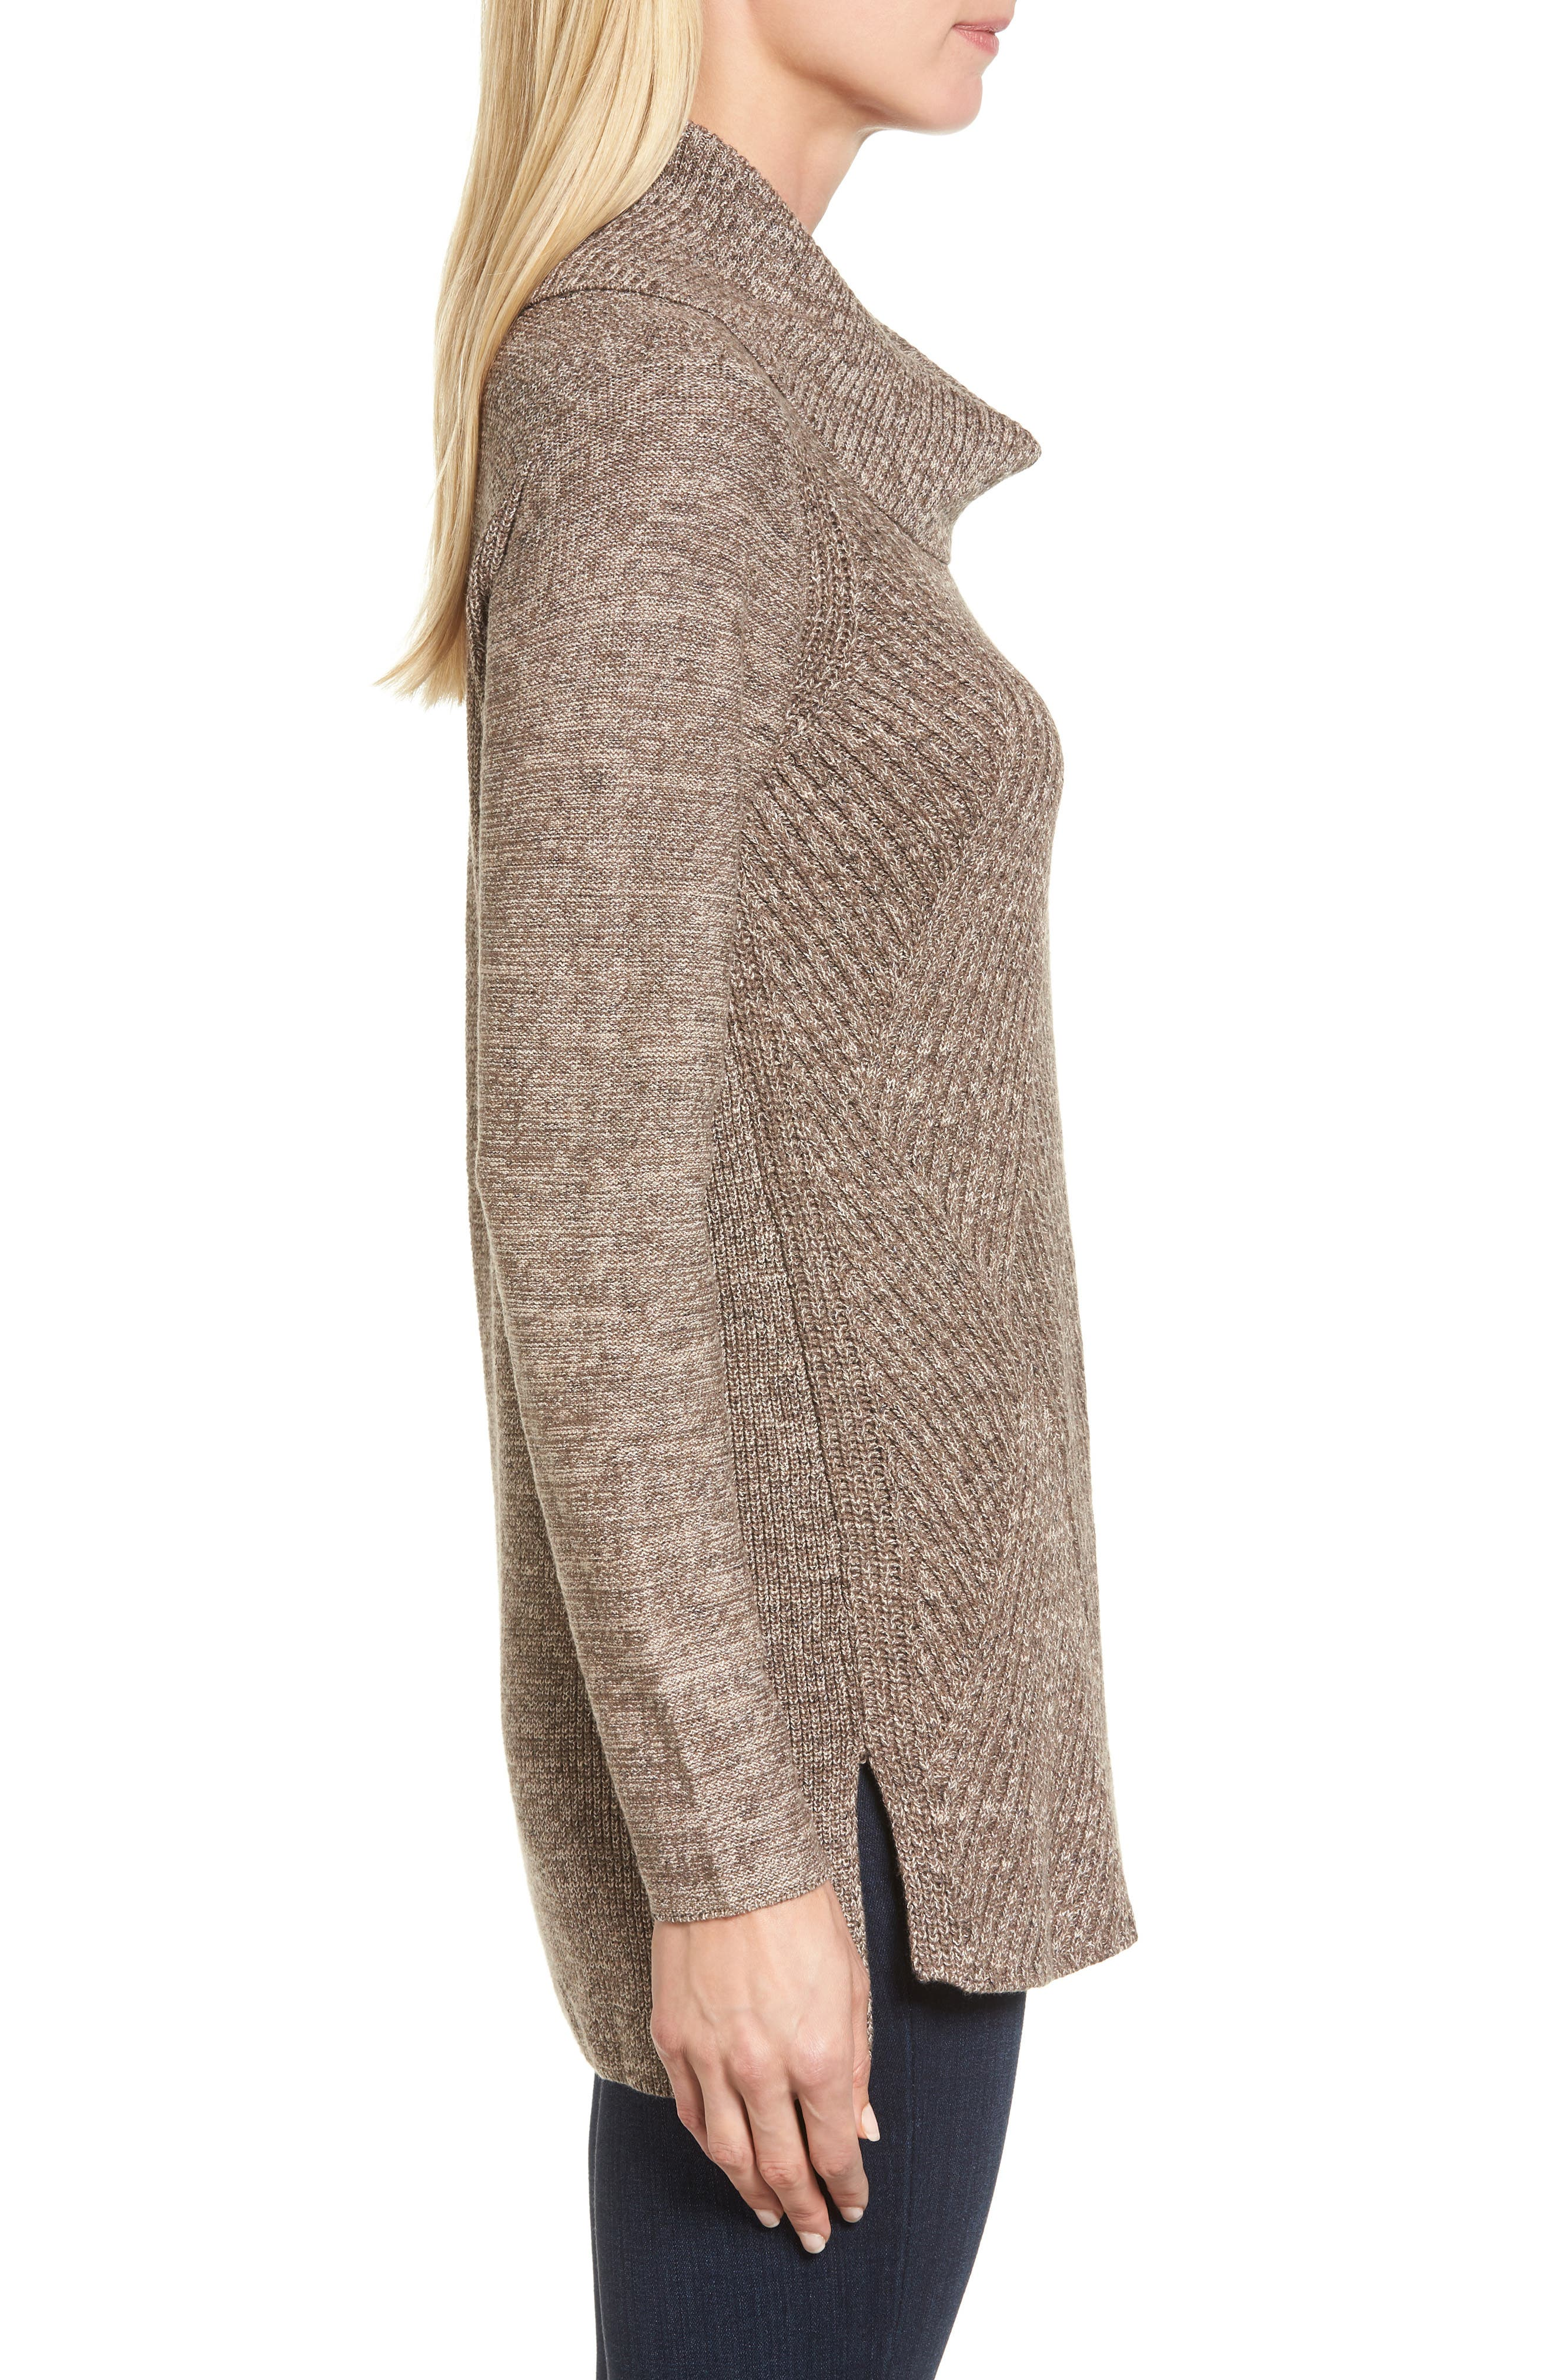 North Star Turtleneck Tunic,                             Alternate thumbnail 3, color,                             Kona